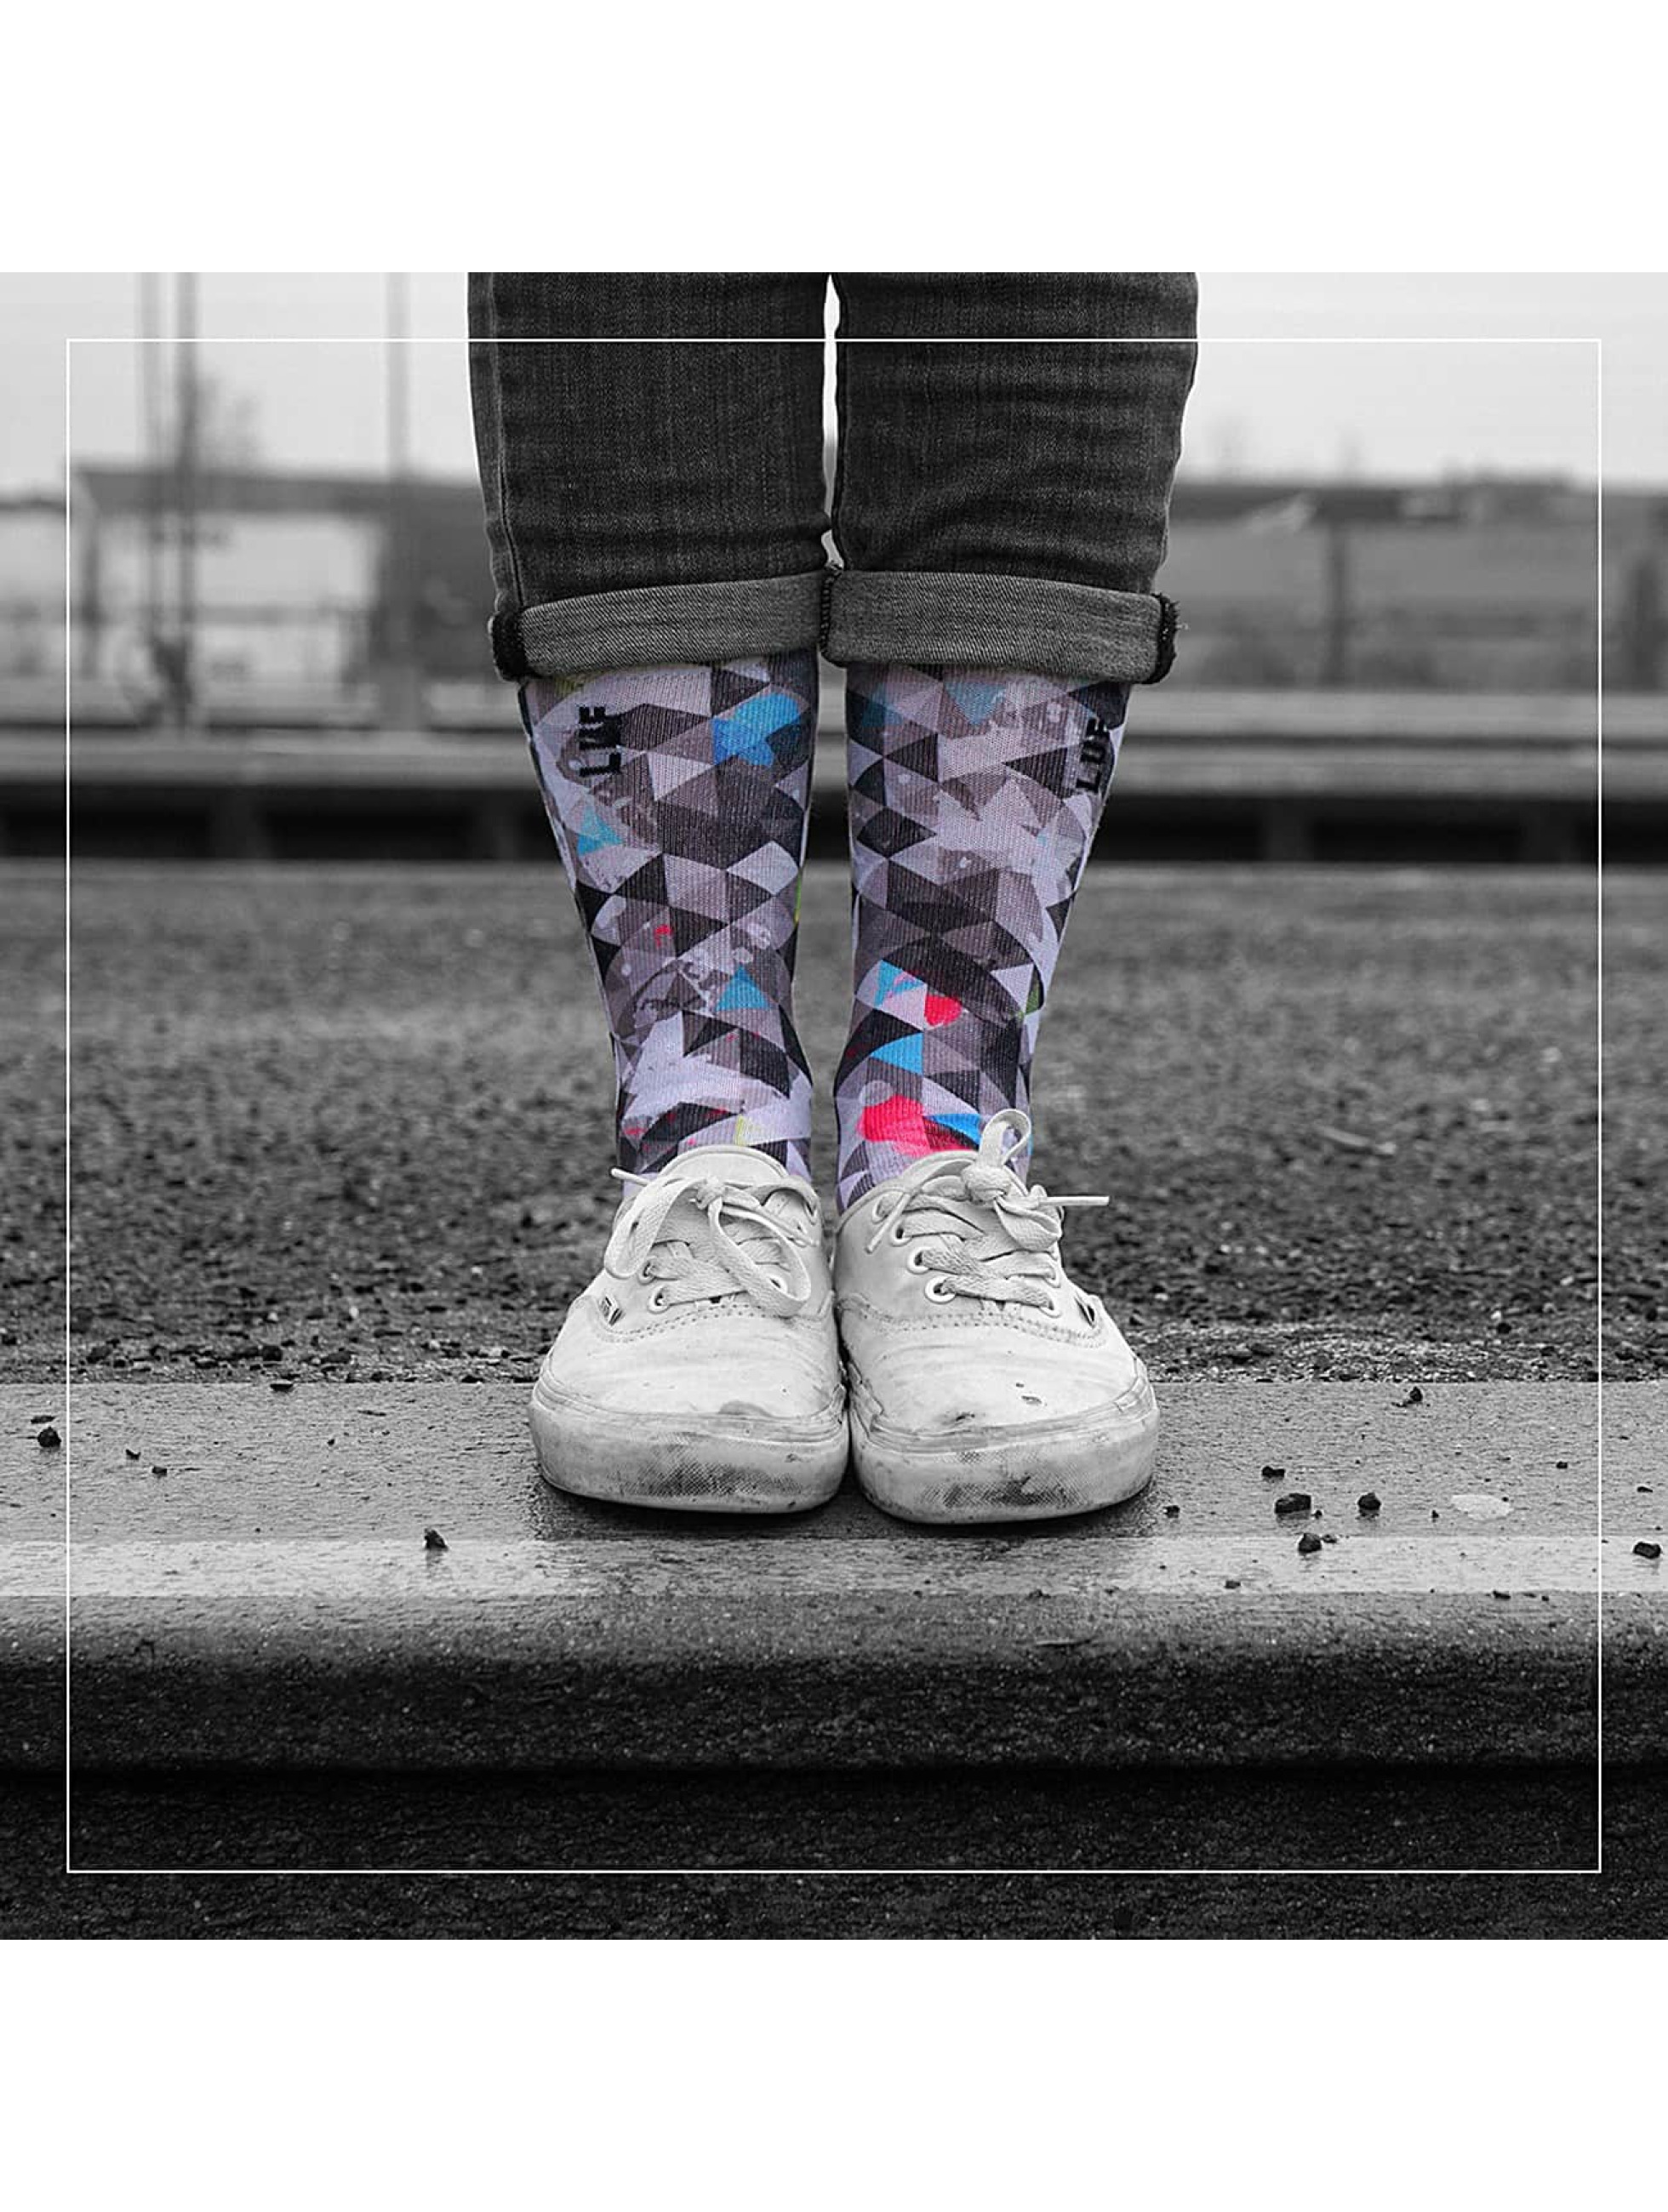 LUF SOX Chaussettes Geogram multicolore